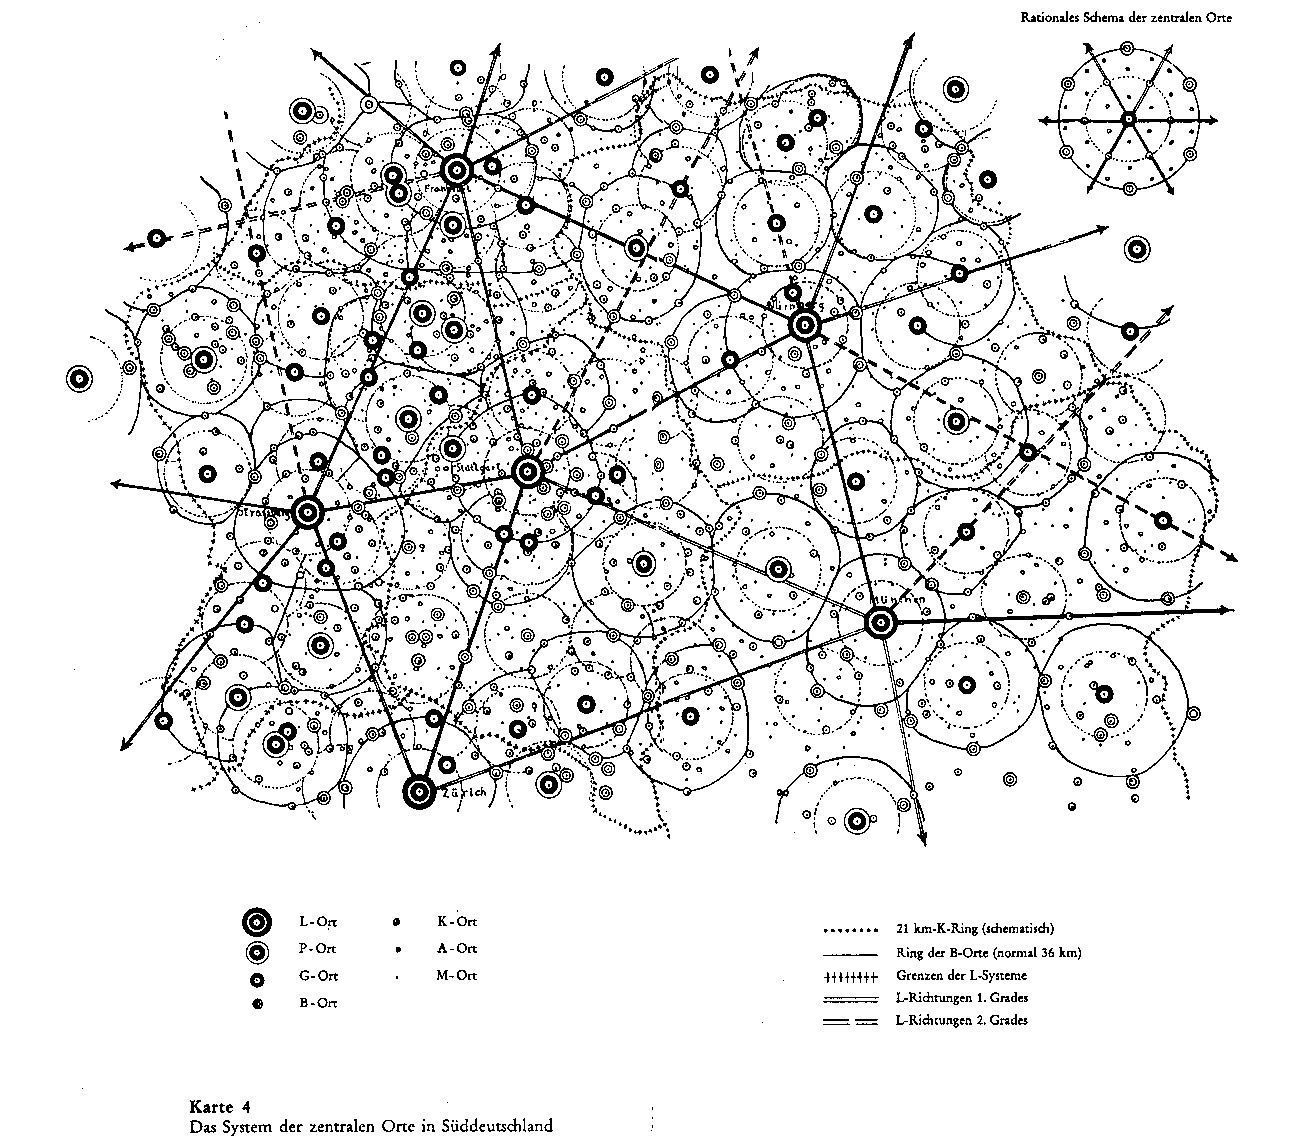 Digram showing application of central place theory to